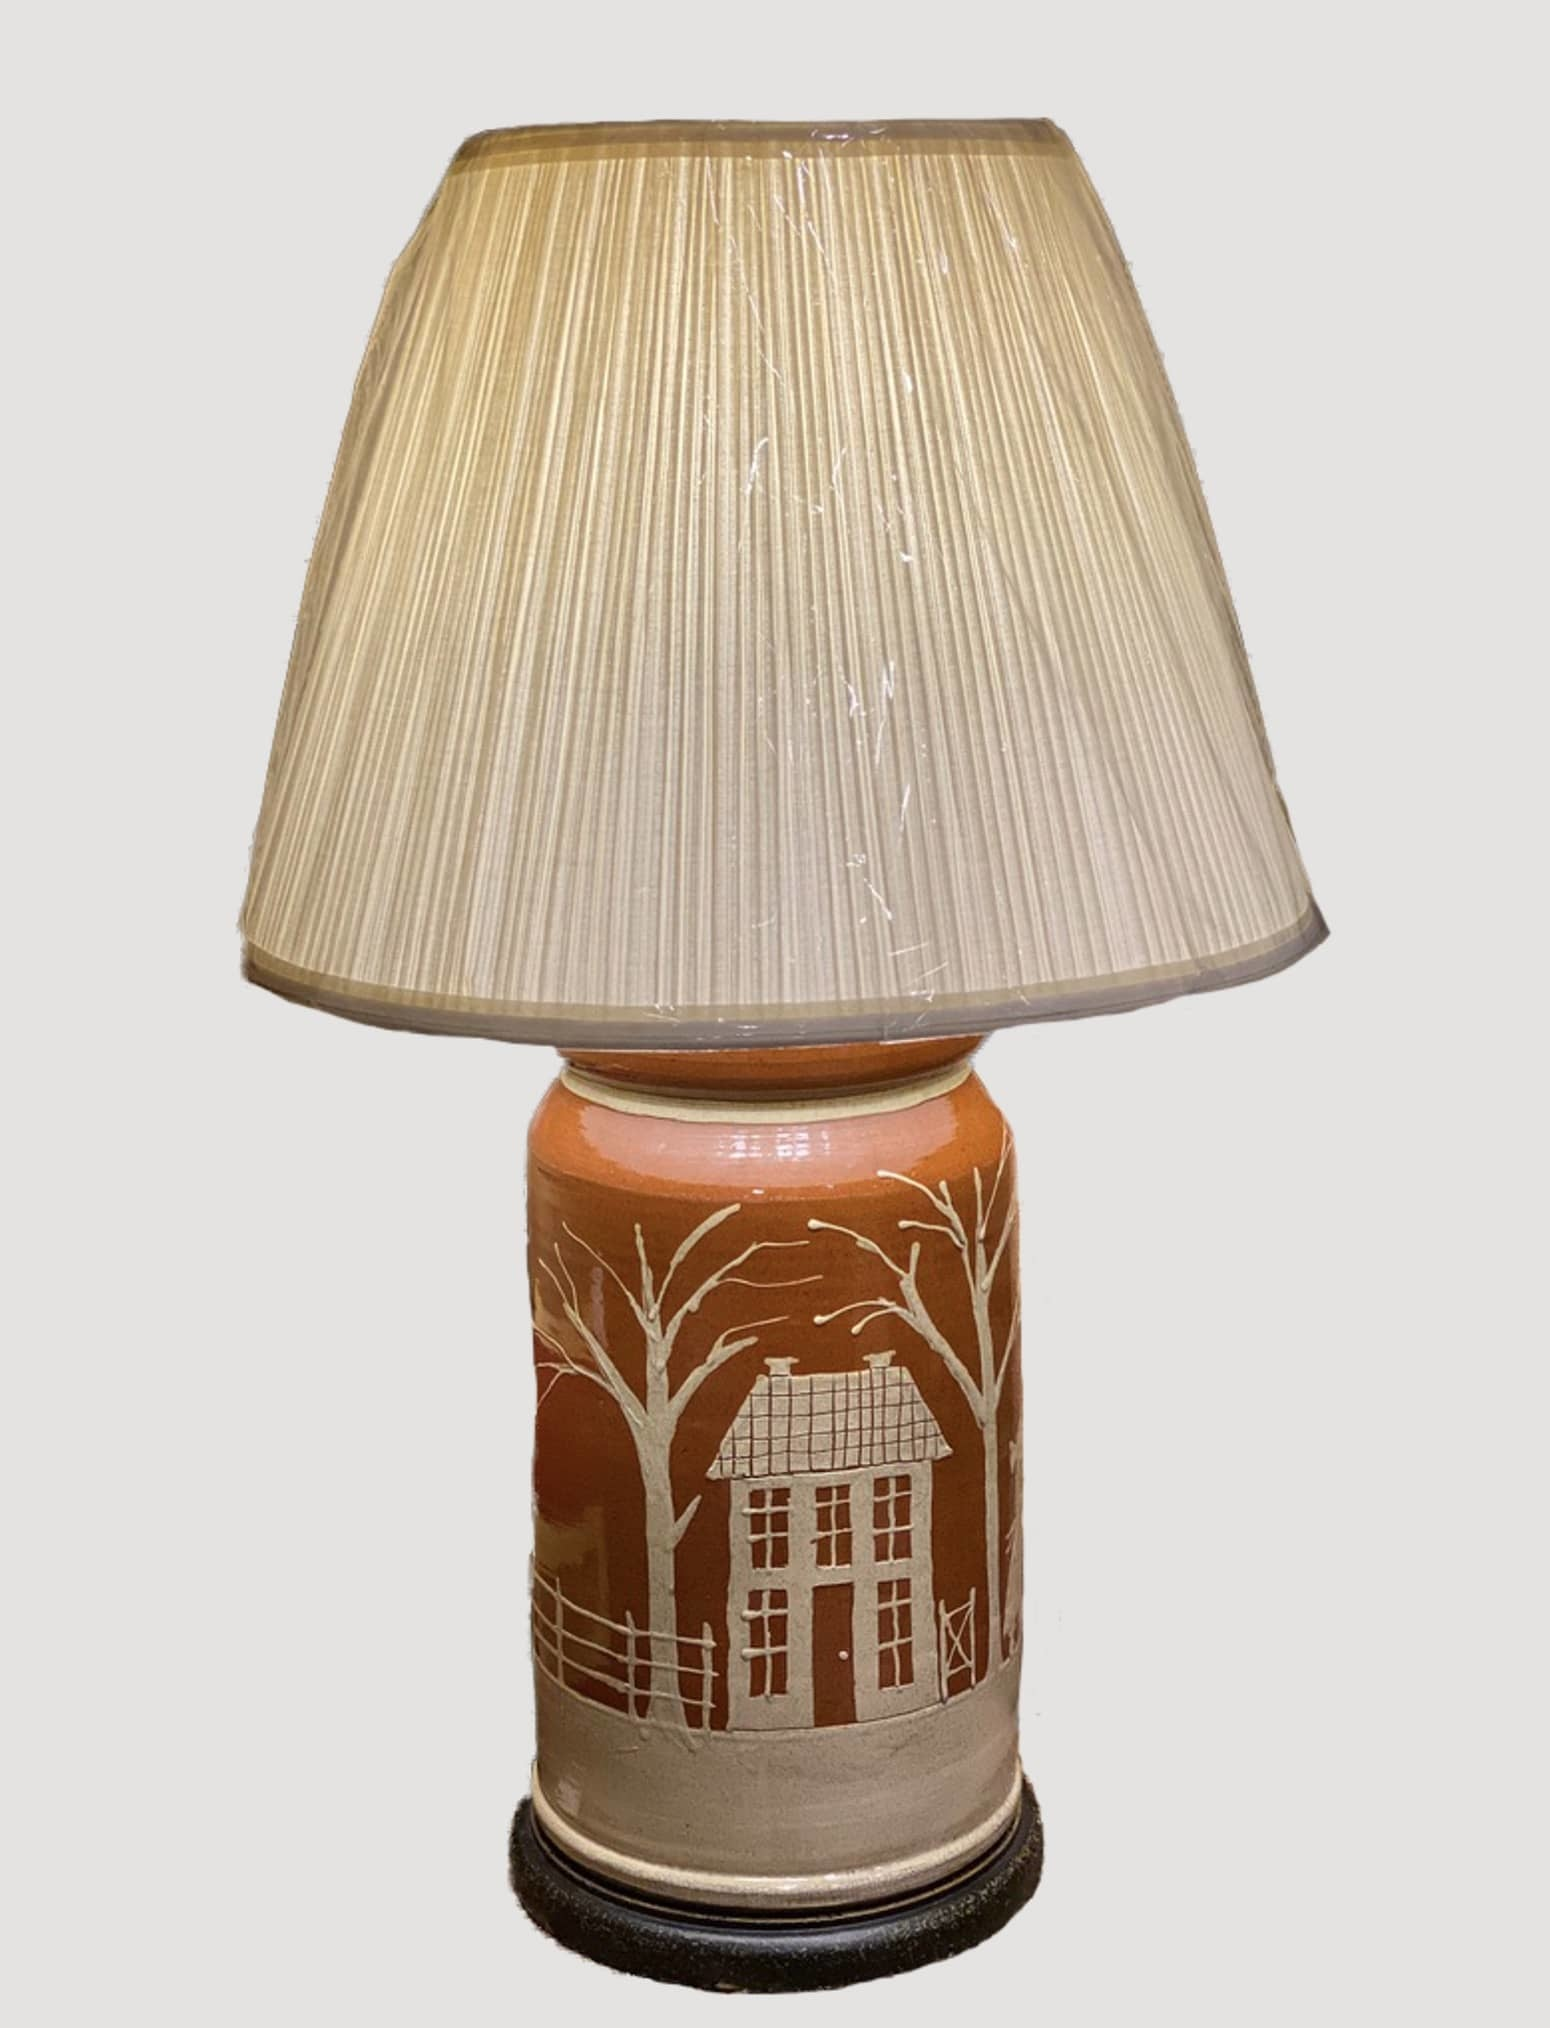 David T. Smith Farmhouse with Sheep Redware Pottery Lamp